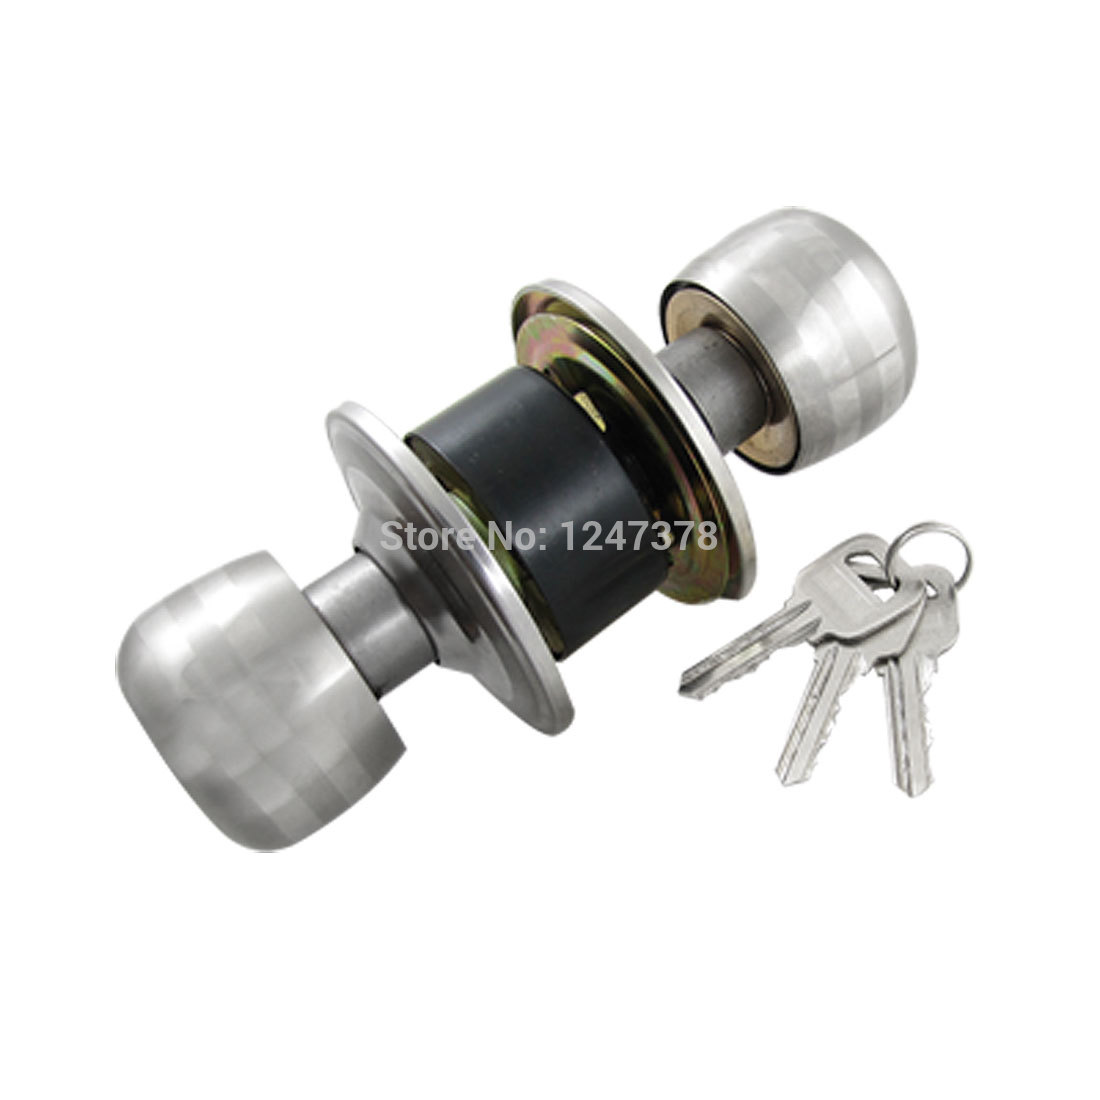 unlock door knob without key photo - 20